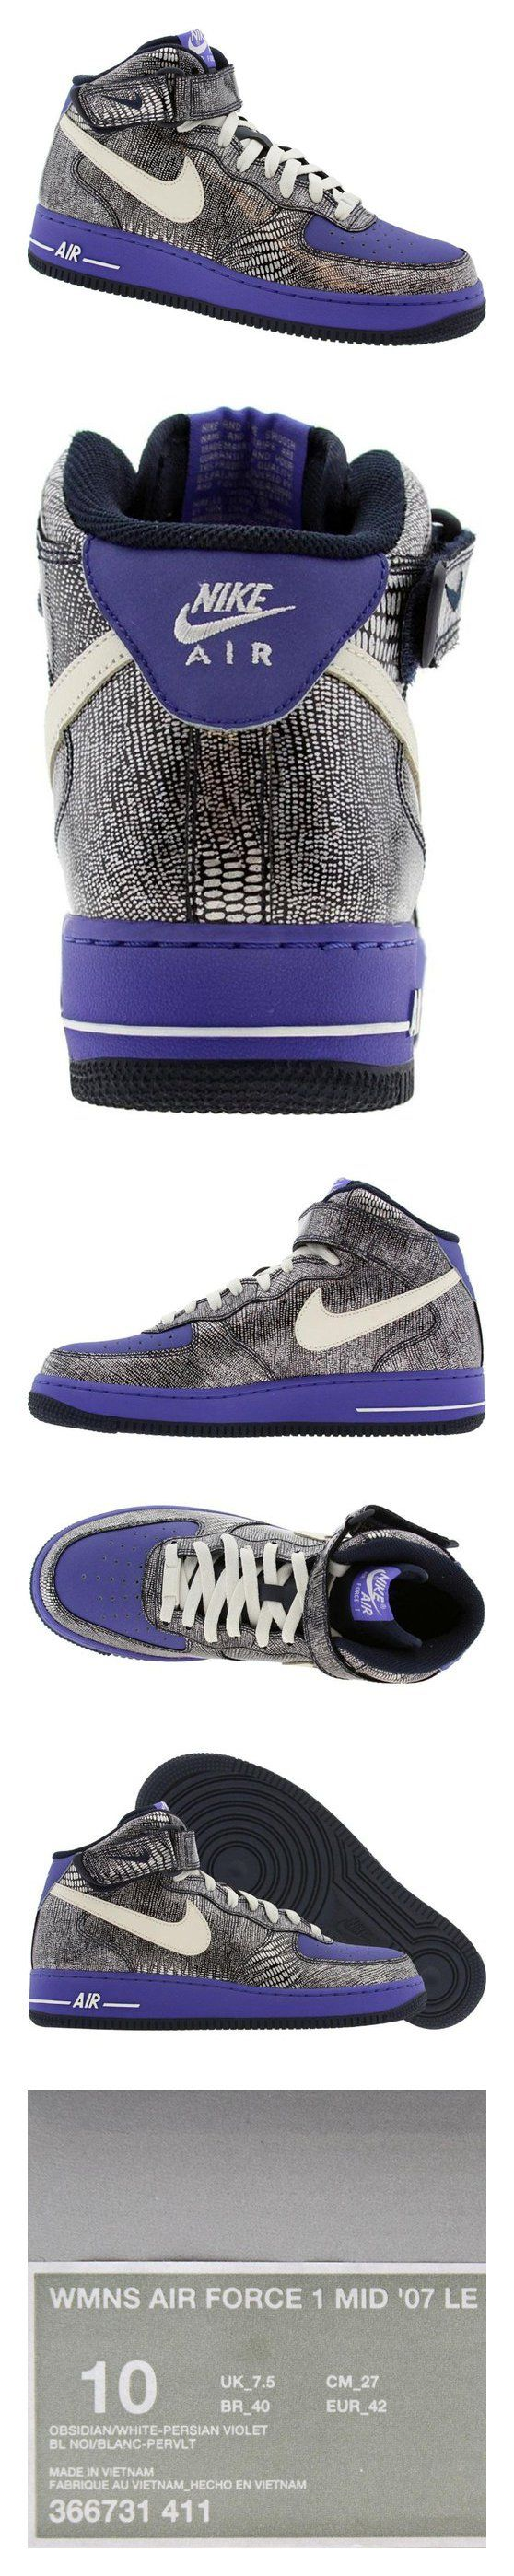 $277.15 - Nike Women's Air Force 1 Mid '07 LE #shoes #nike #